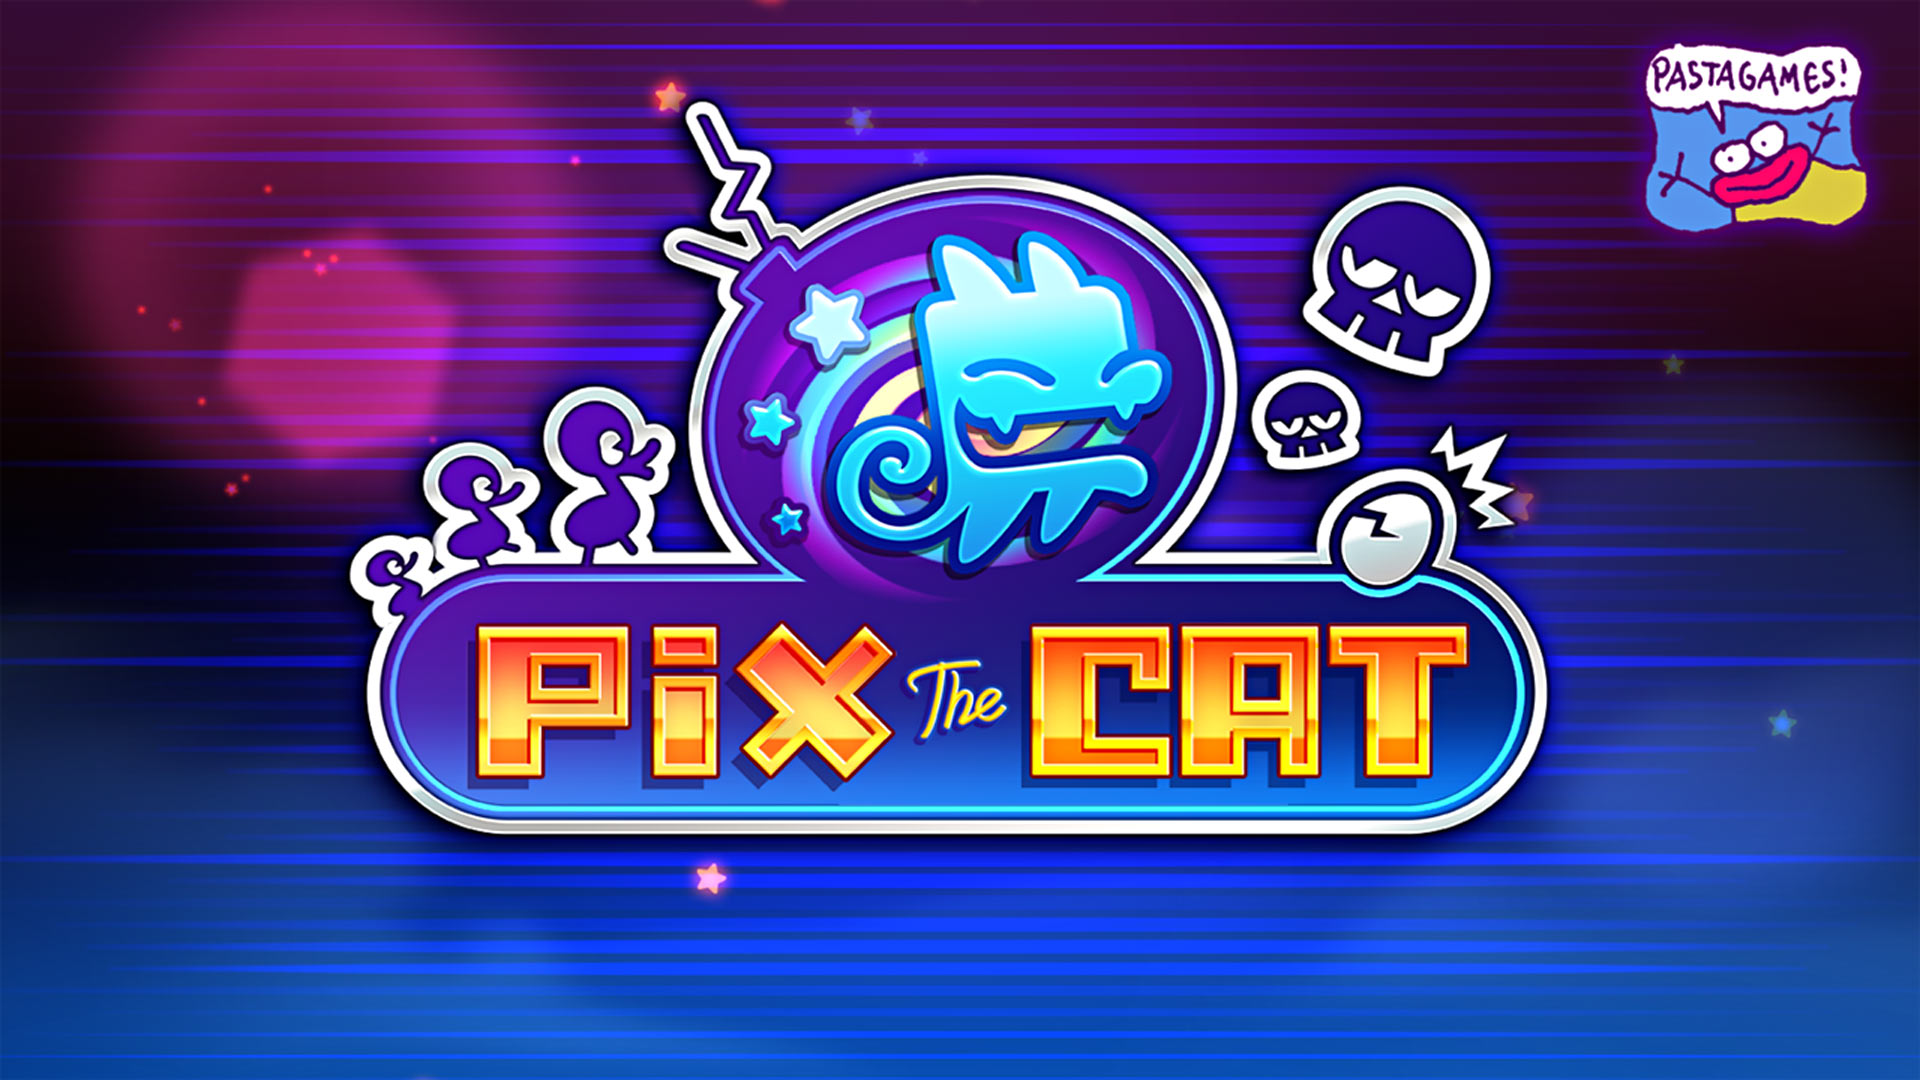 Pix The Cat Announced For PC